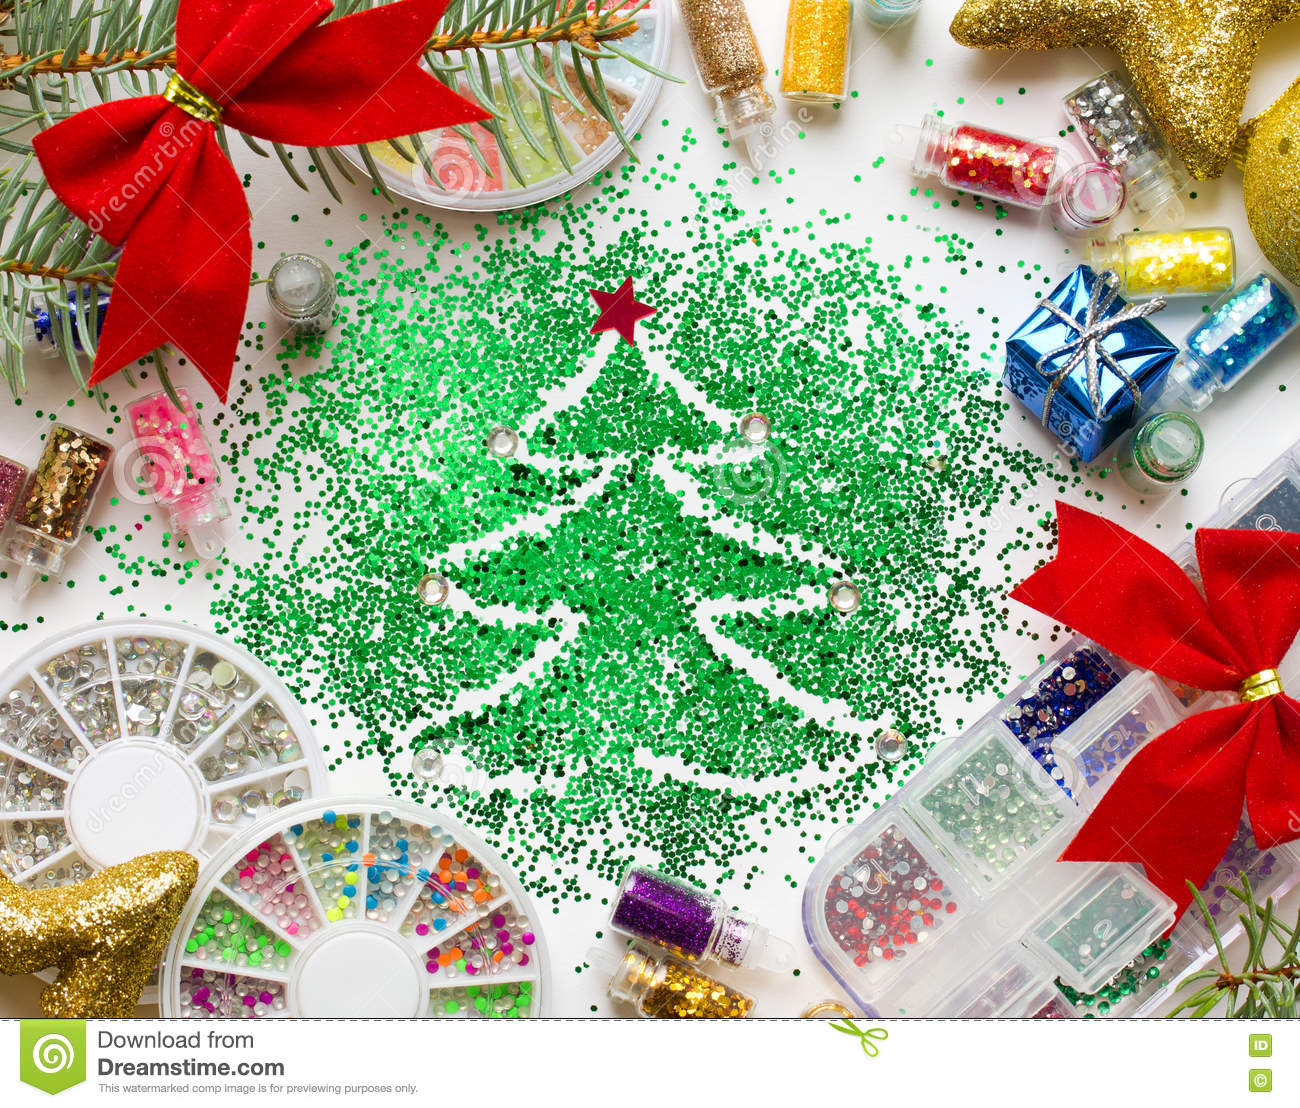 Christmas Beauty Salon.Christmas Beauty Salon Nail Festive Decorations And